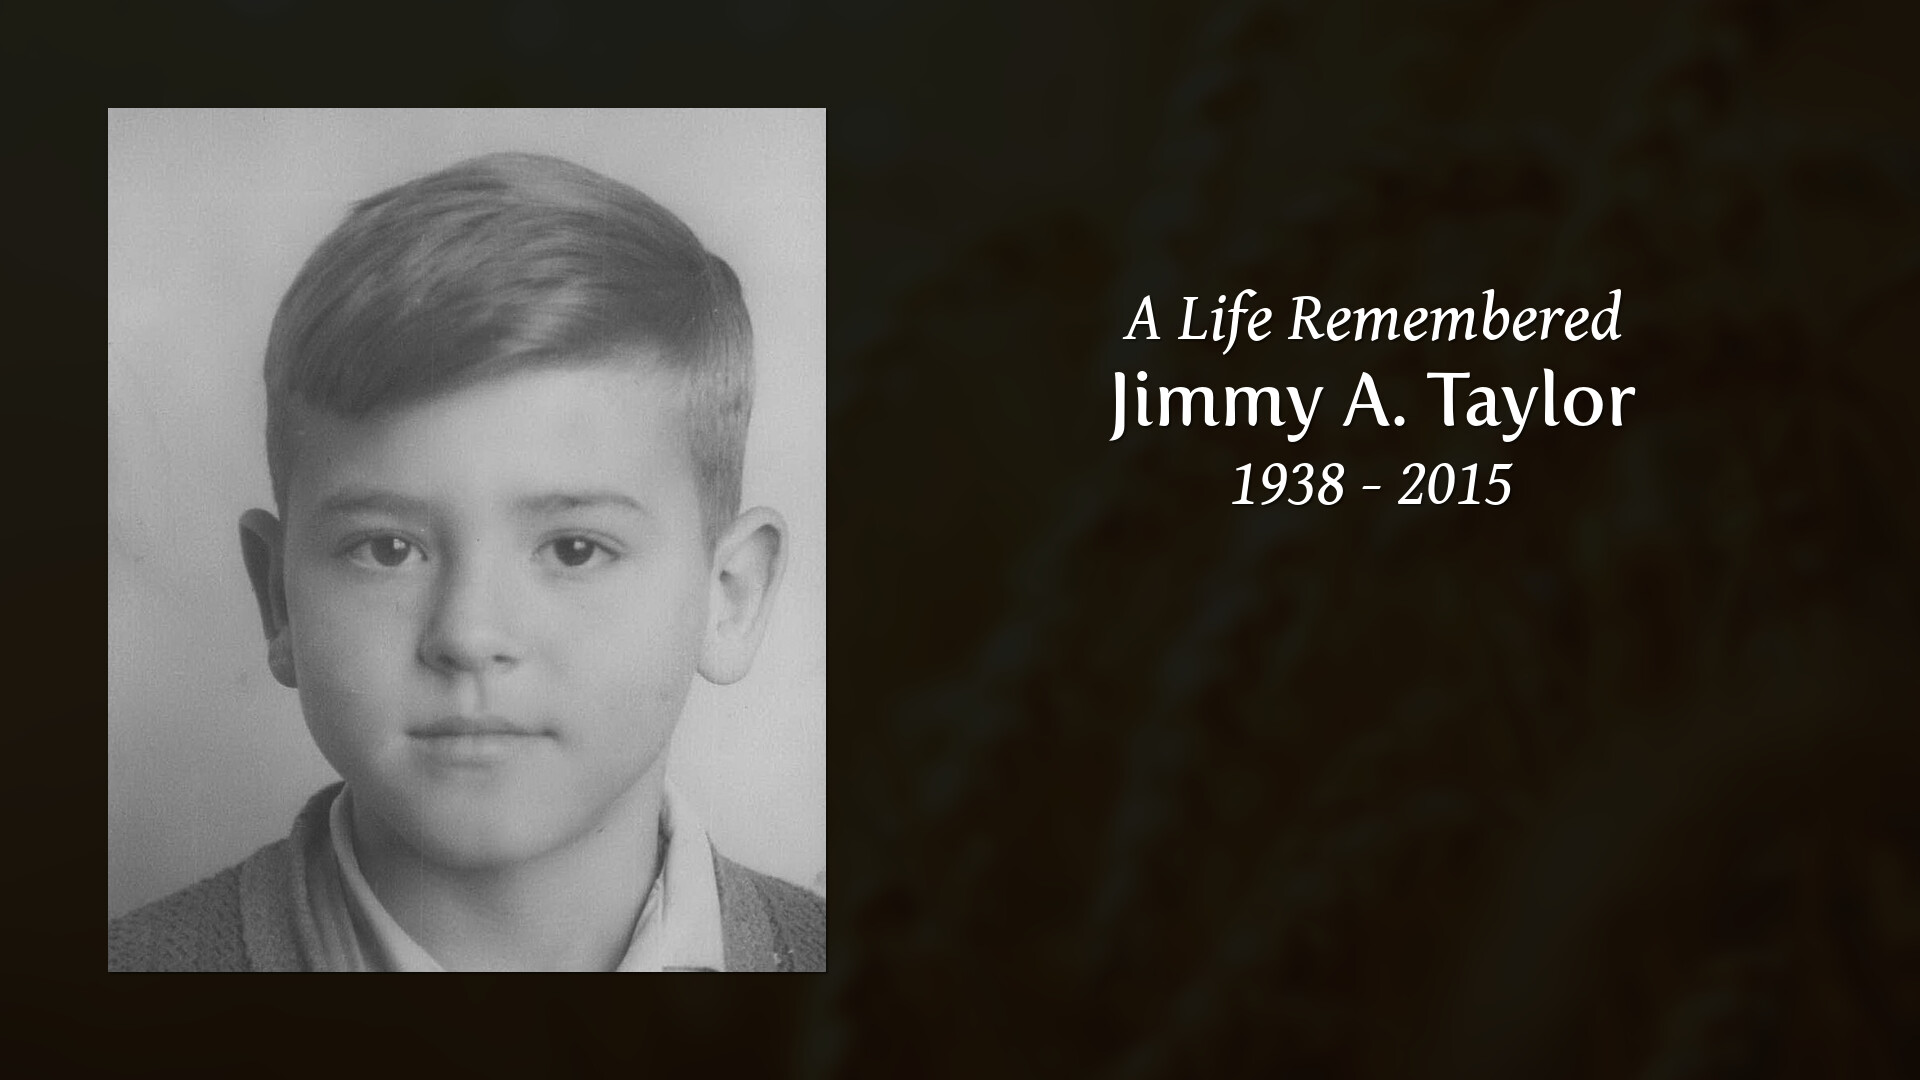 Jimmy Taylor - Lake Shore Funeral Home & Cremation Services